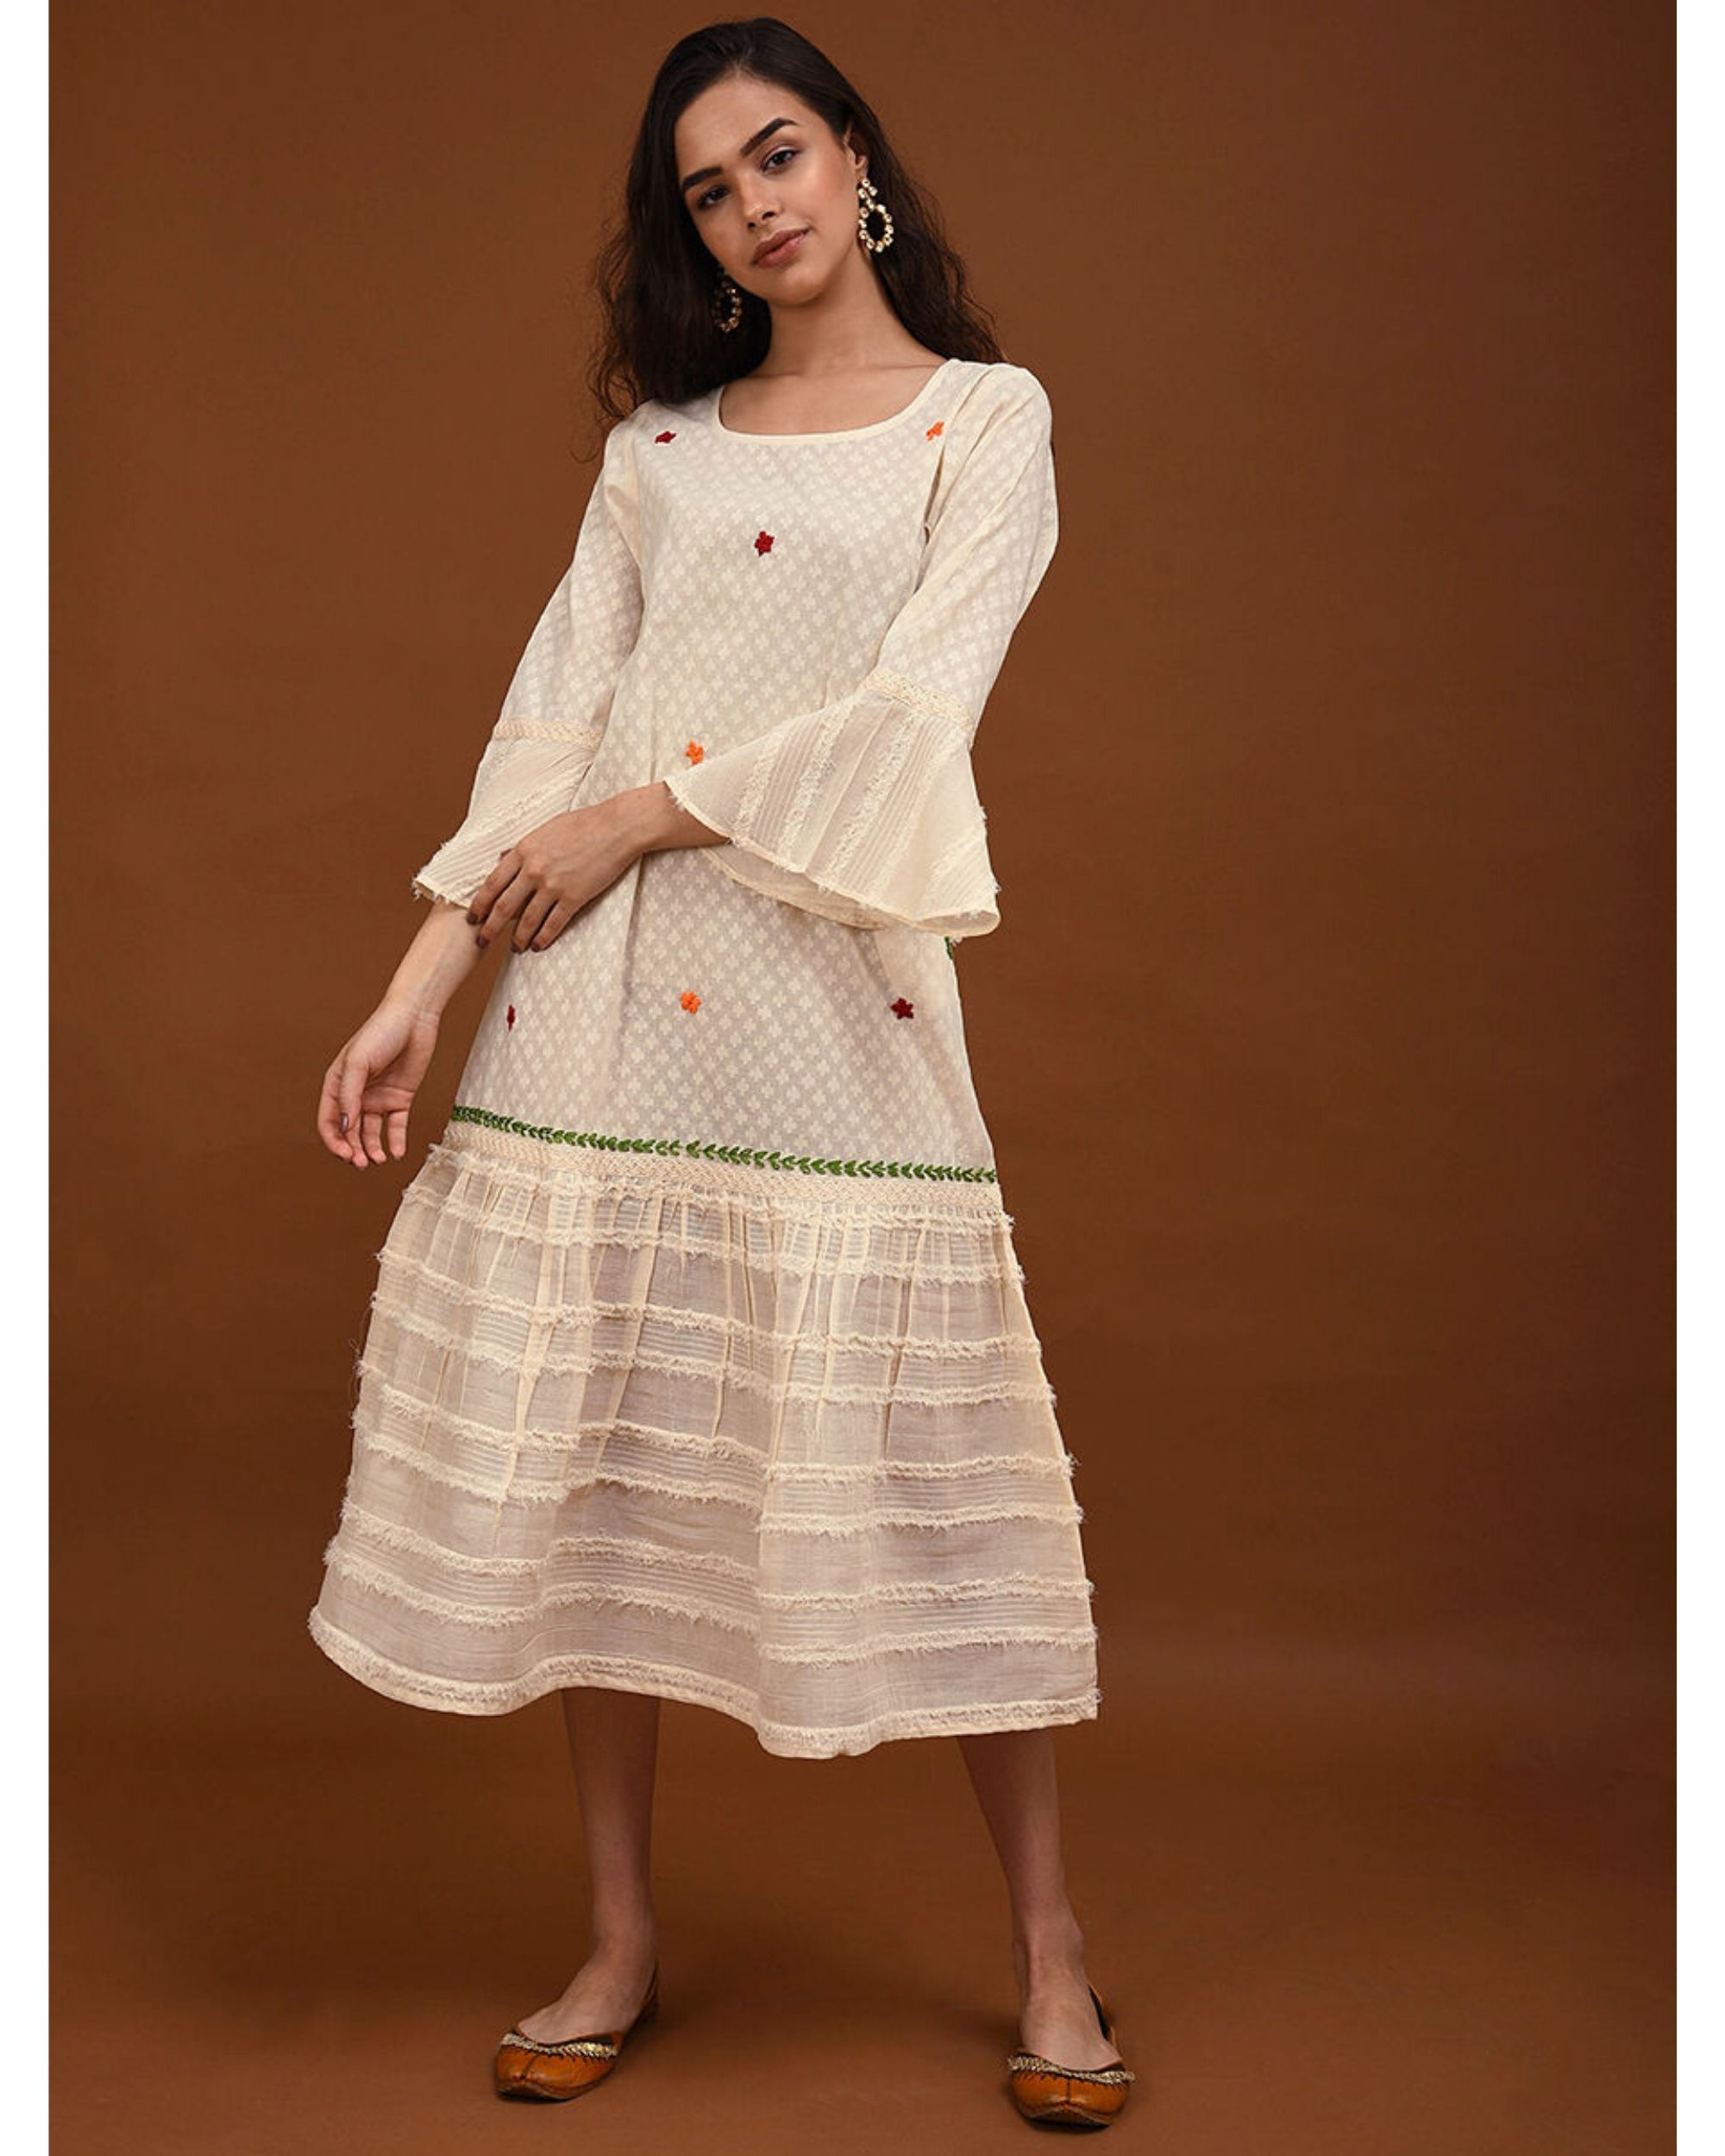 Off white hand embroidered paneled dress